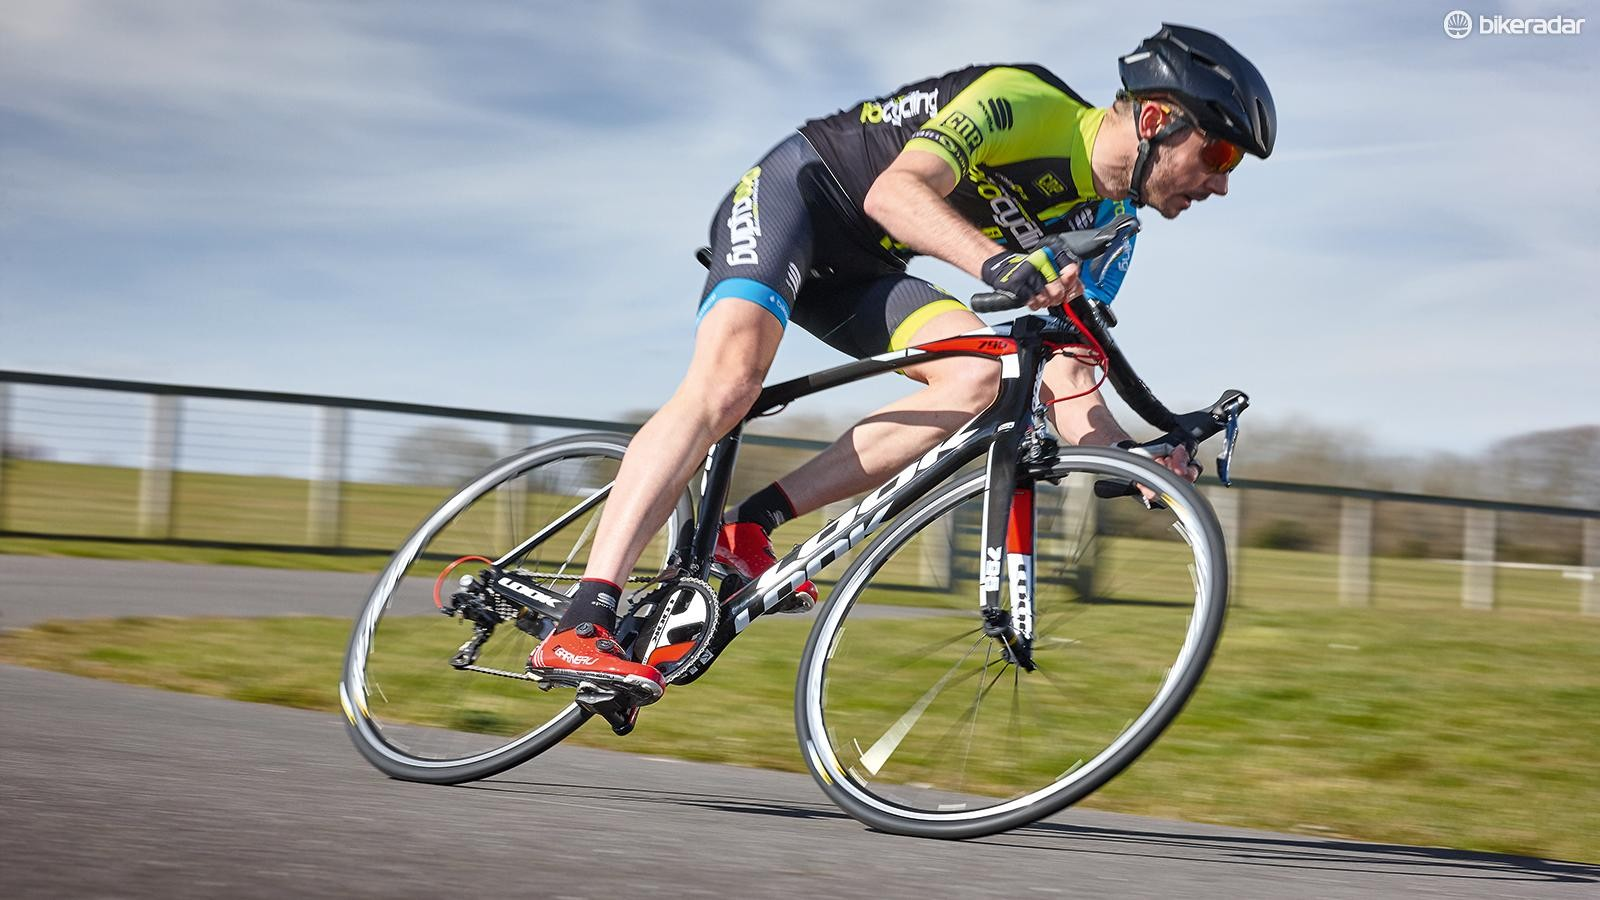 This Look is by no means a bad bike, but its integrated features don't add enough and the wheels hold it back